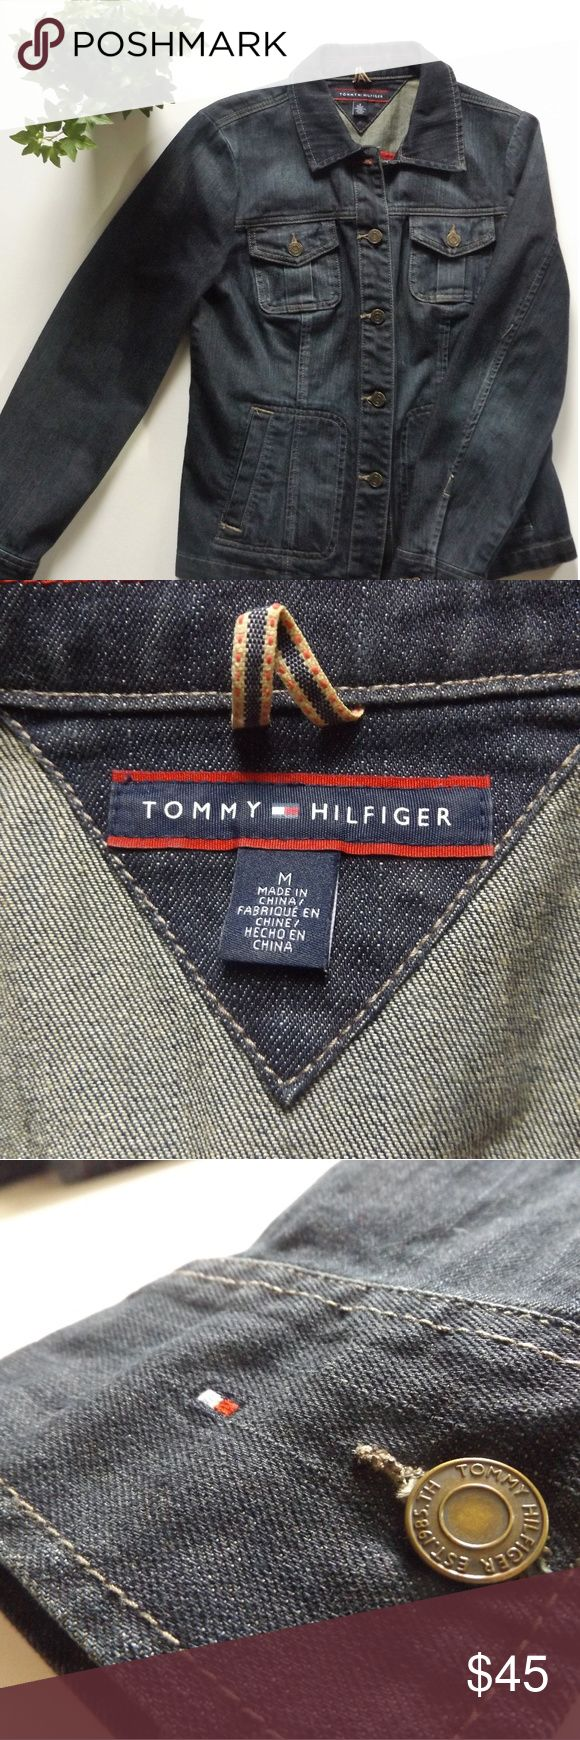 Tommy Hilfiger Denim Jacket Dark denim jacket, button-up closure. Breast pockets are real but the hand pockets are not. Wear with a dress, a skirt, shorts, pants or go denim on denim! Awesome jacket! 99% Cotton, 1% Elastane. Tommy Hilfiger Jackets & Coats Jean Jackets